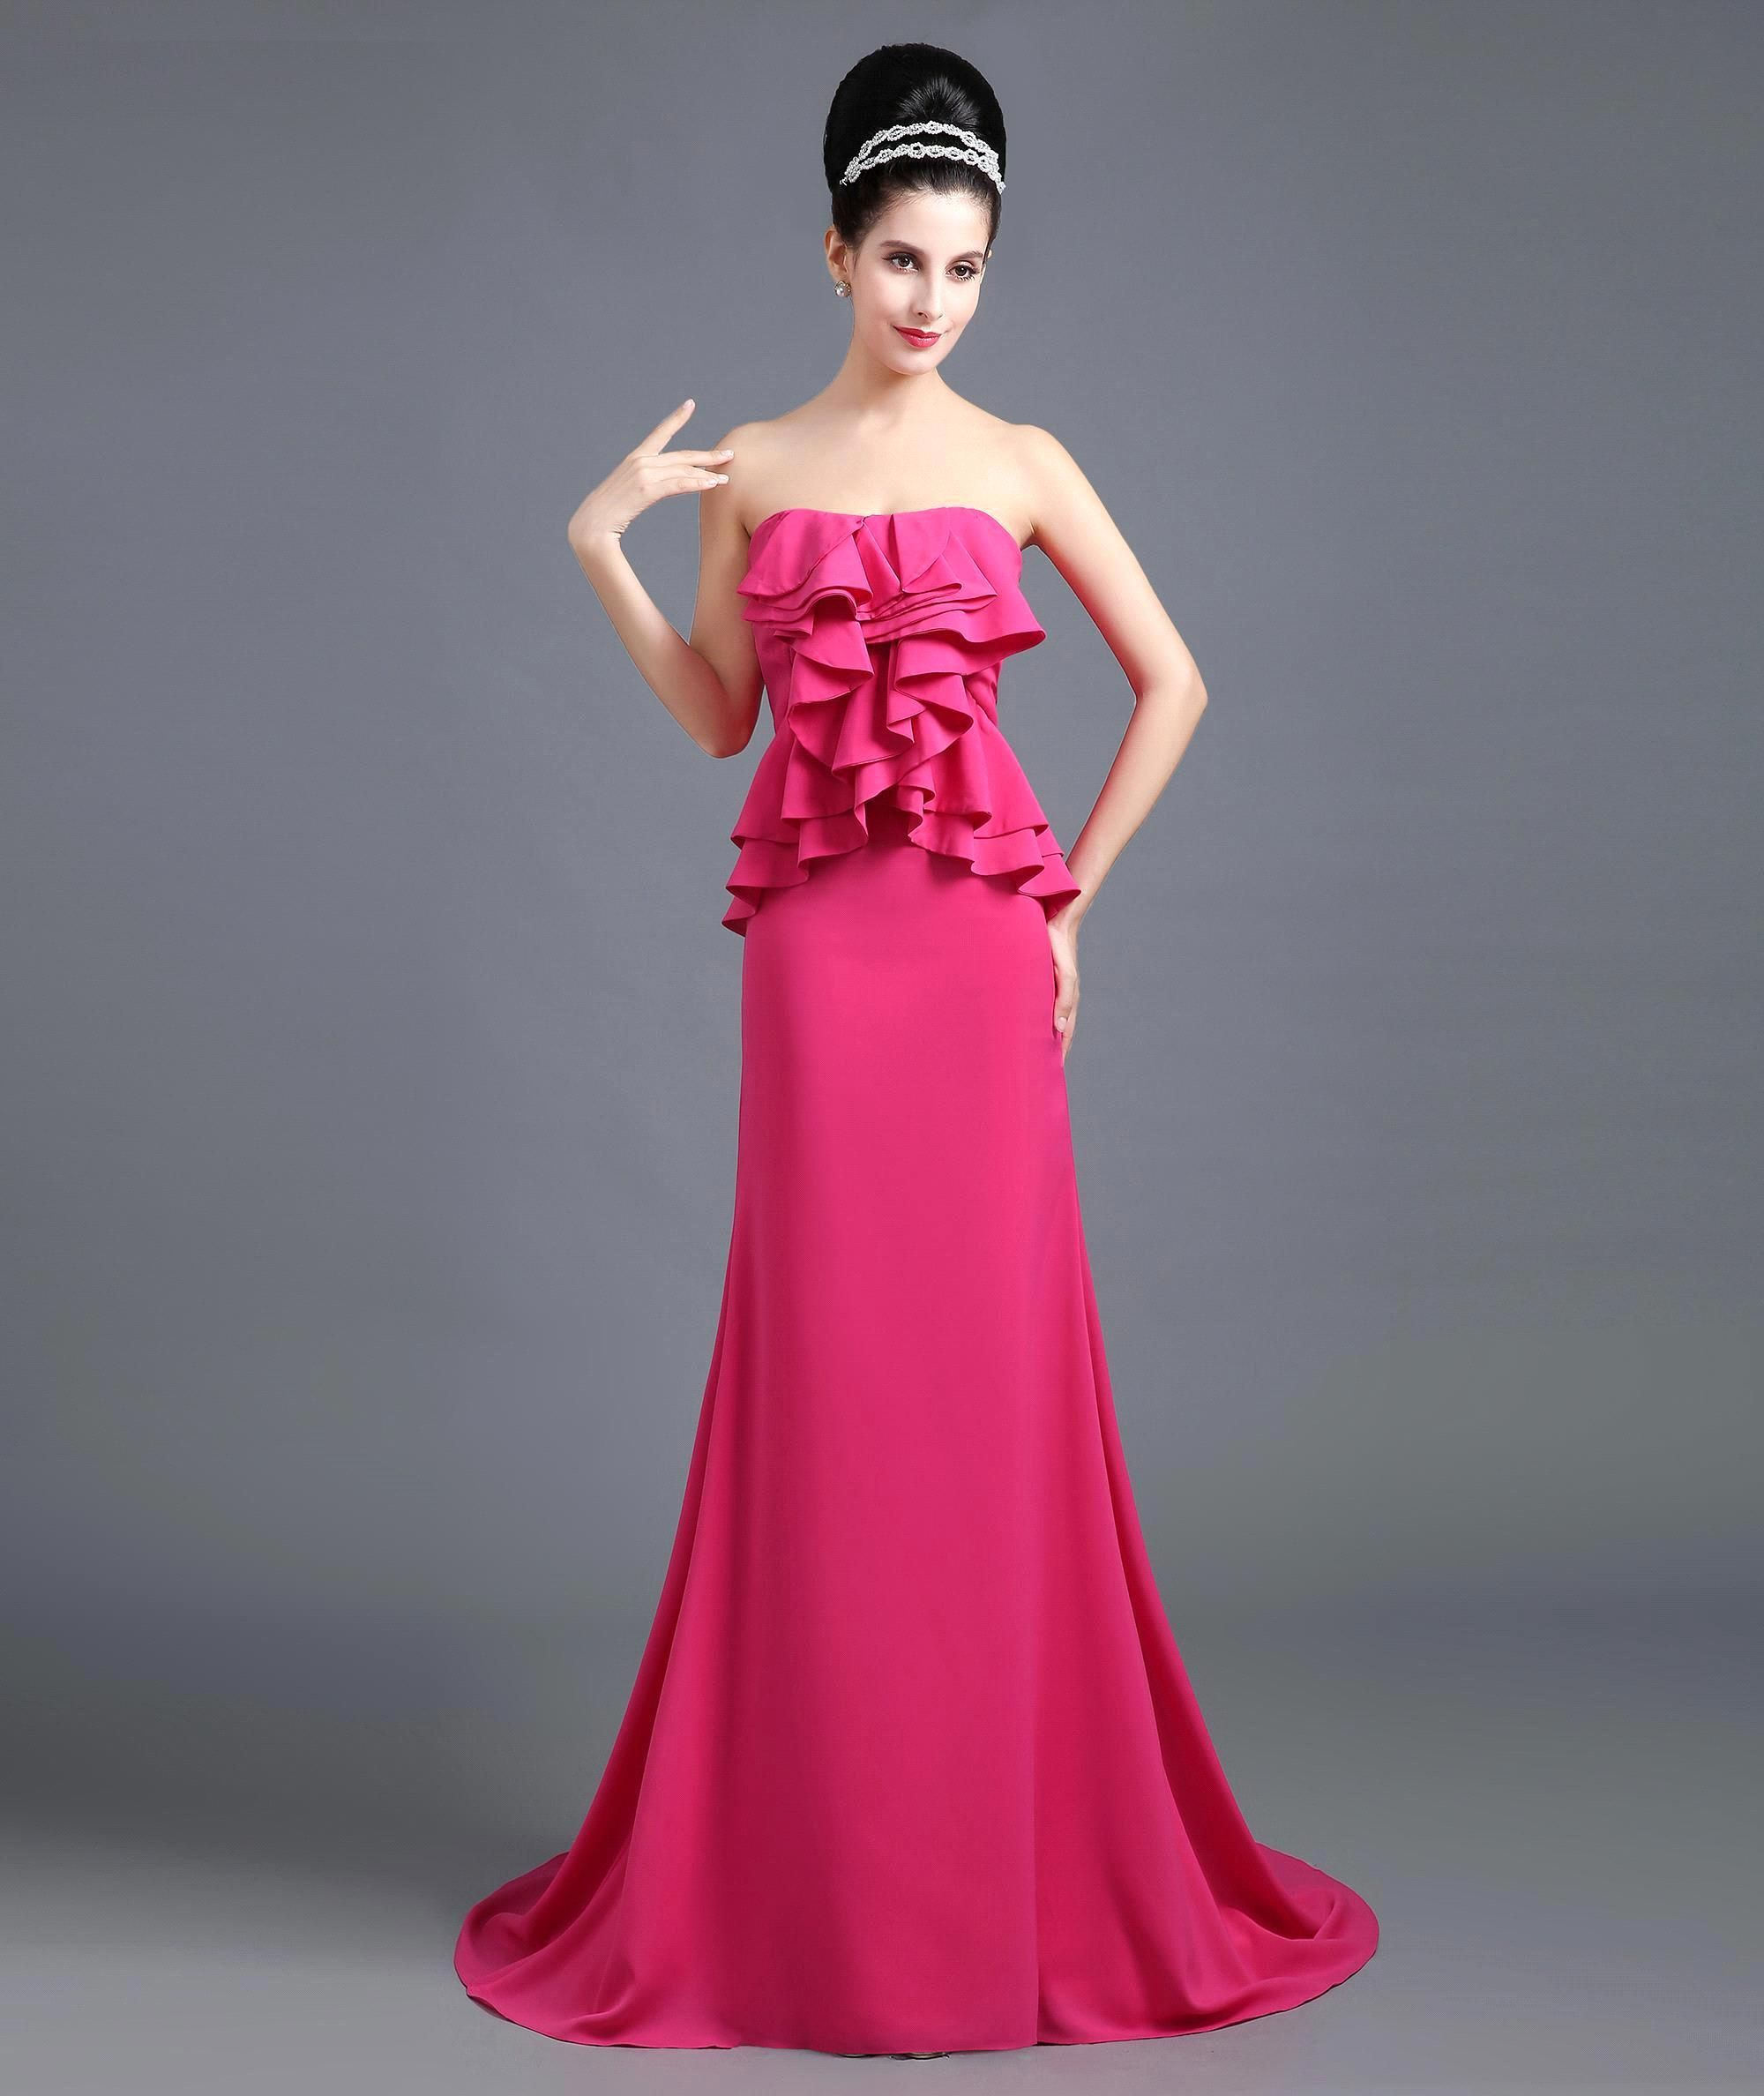 Cheap prom dresses buy directly from china supplierswelcome to